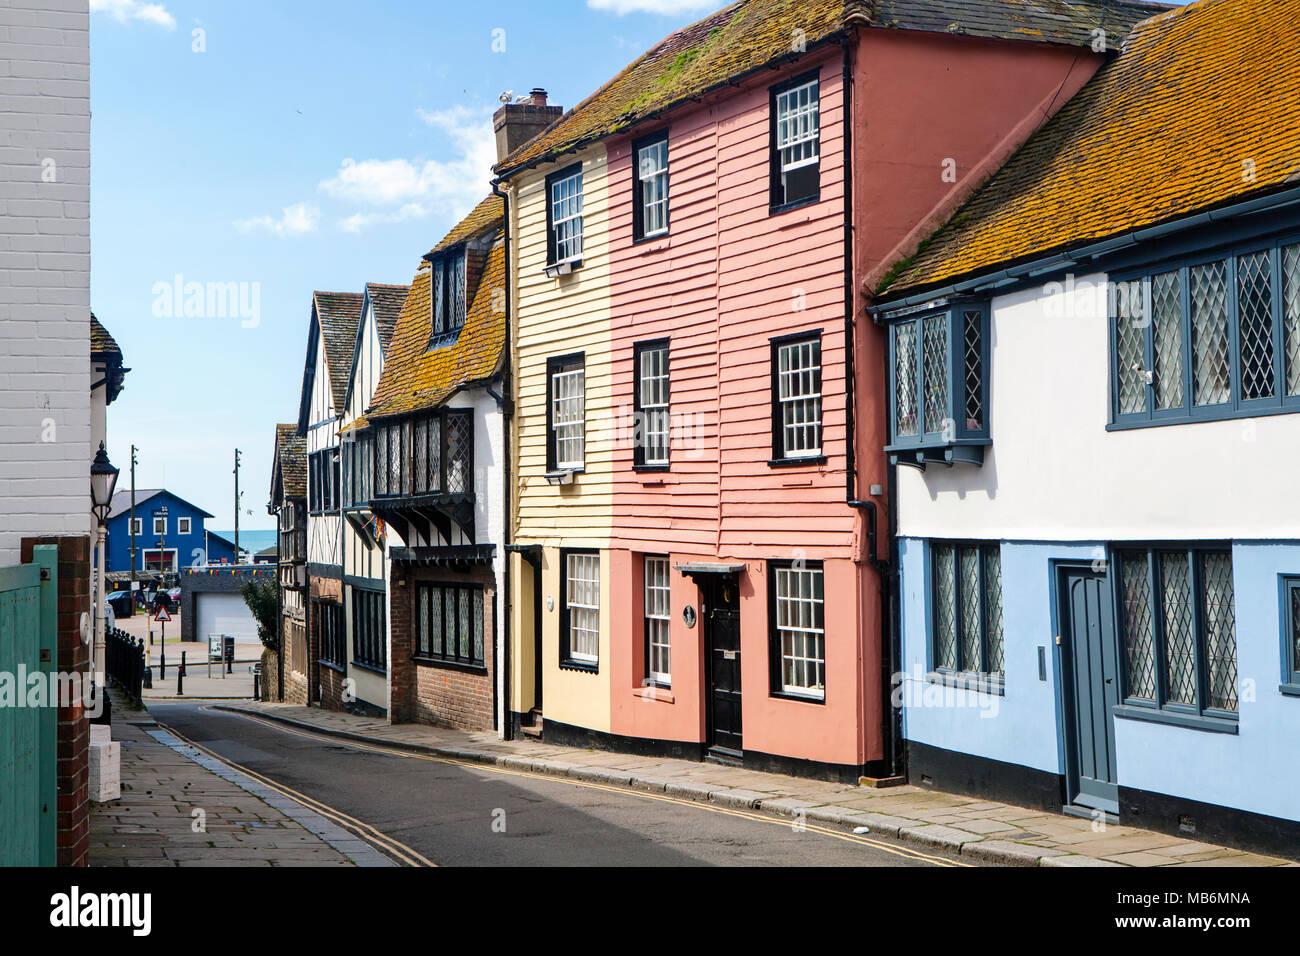 HASTINGS, UK - APRIL 5th, 2018: View of street in seaside town of Hastings with traditional house.  Hastings is a historic town known for the 1066 Bat - Stock Image